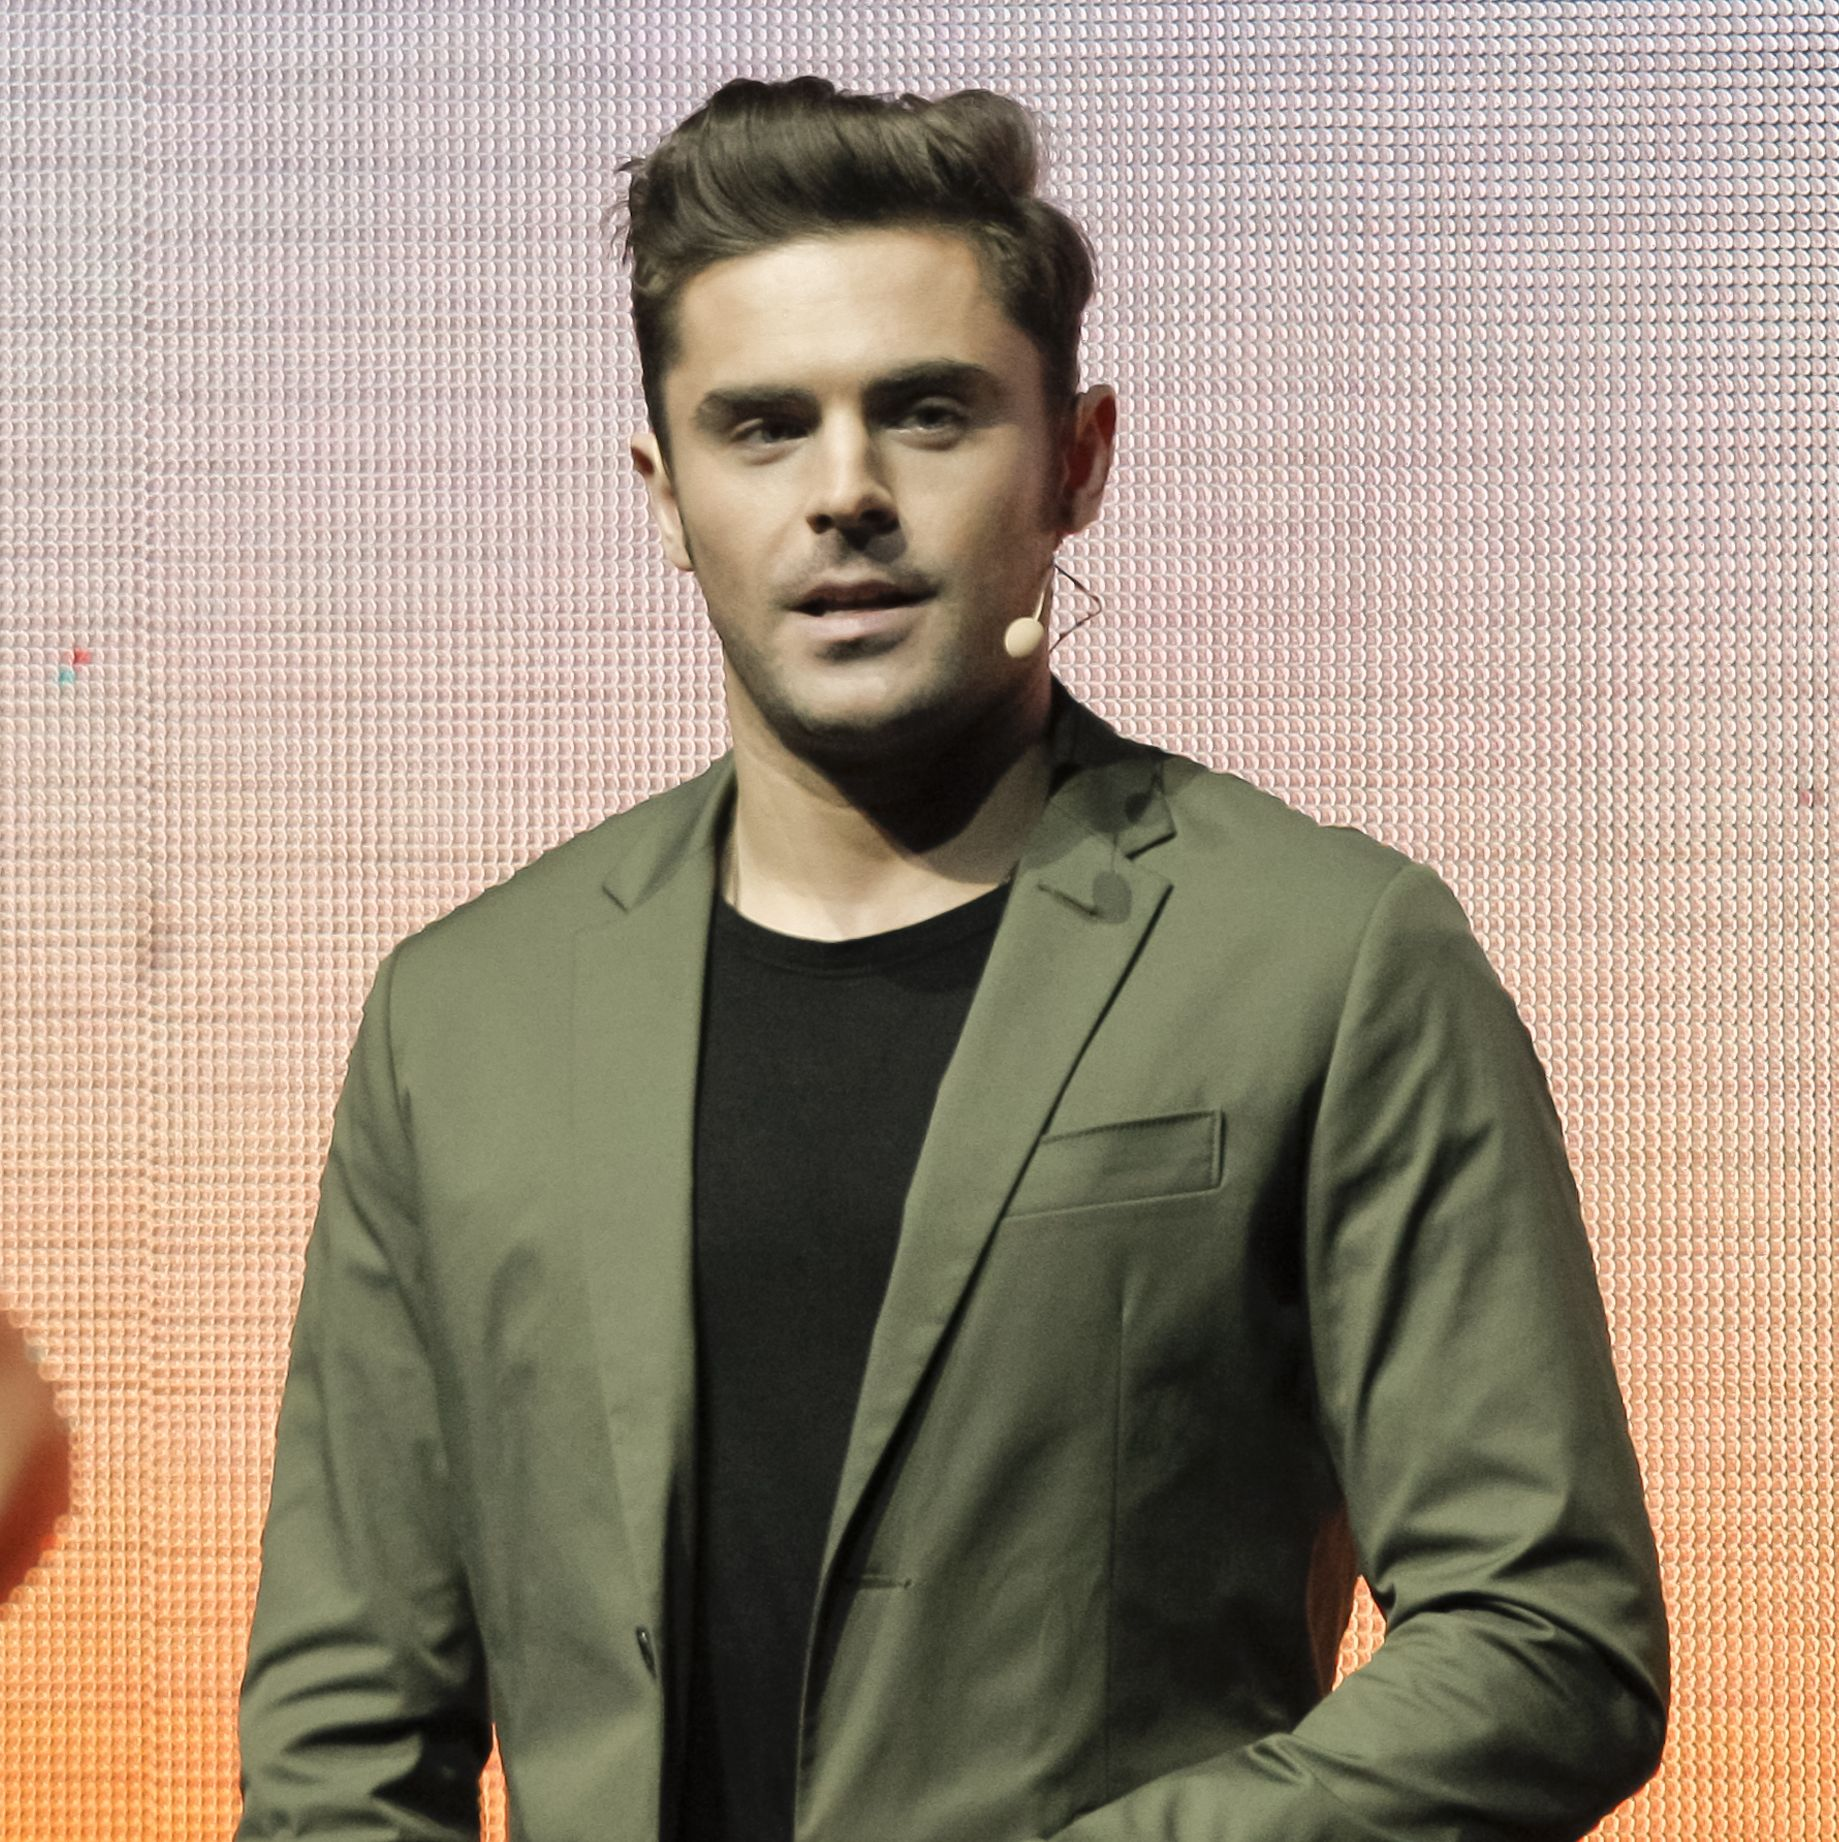 Zac Efron joins new Scooby-Doo movie - here's the classic cartoon character he's playing